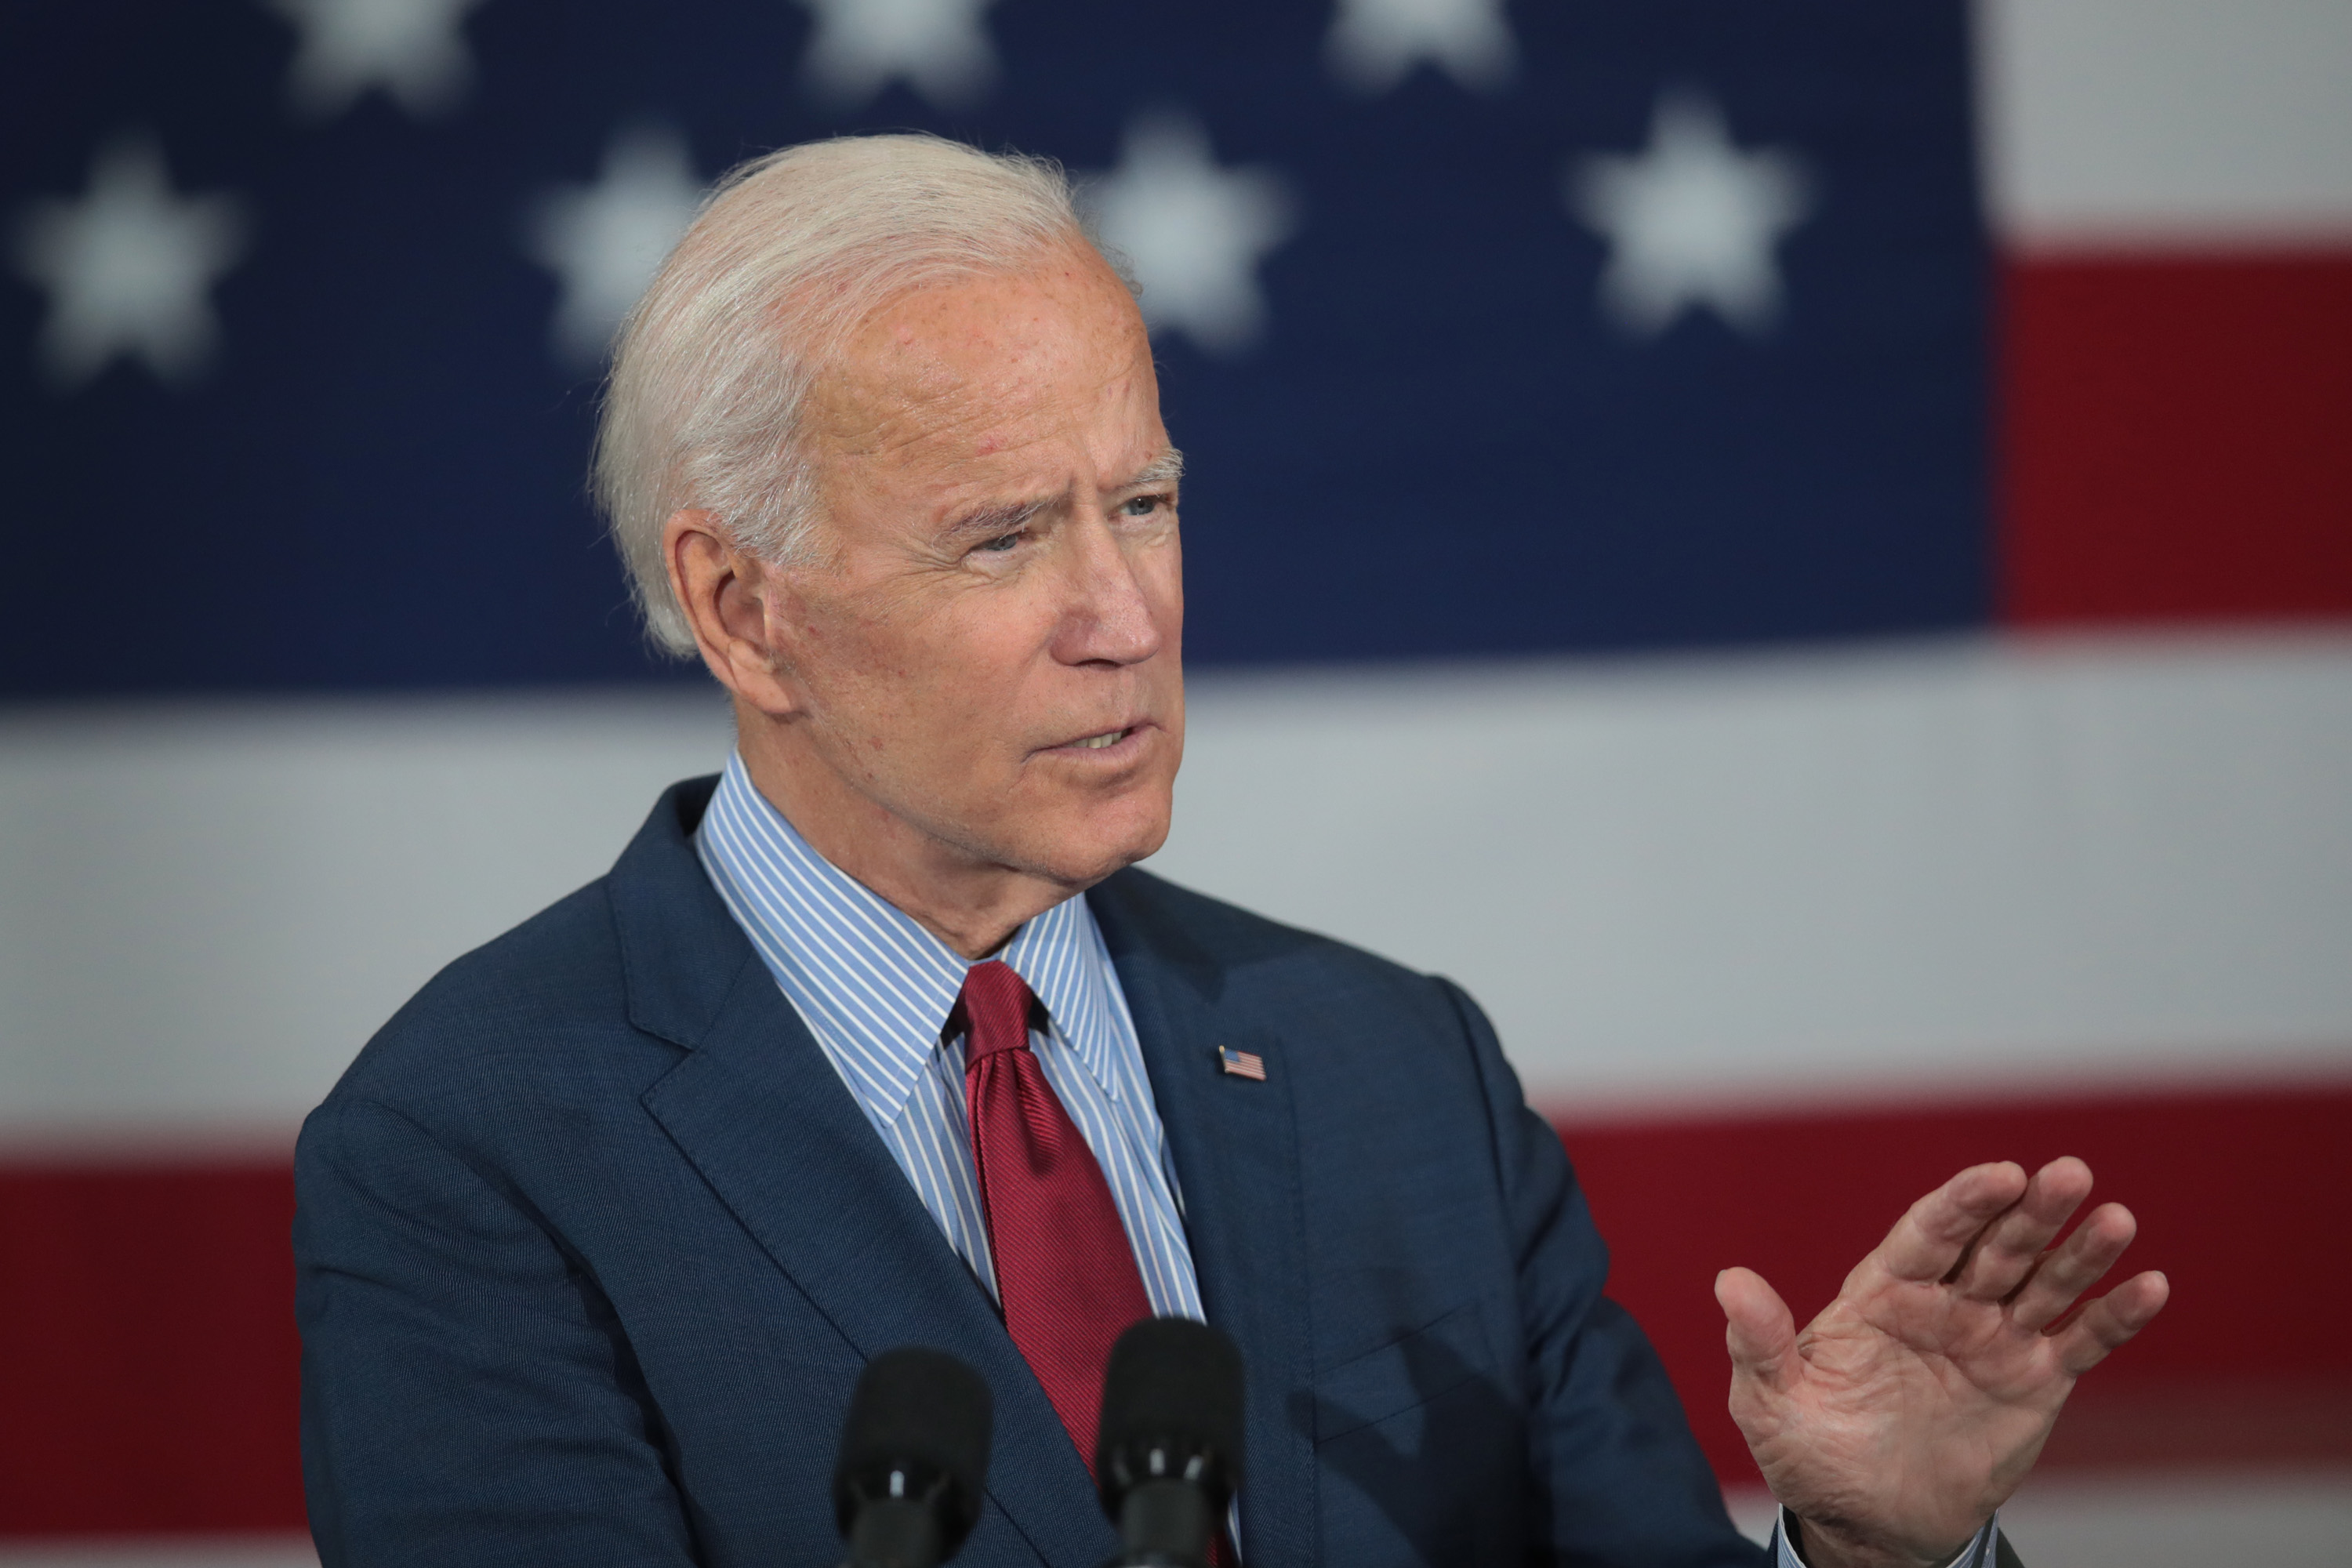 Biden Apologizes for Calling Clinton Impeachment Inquiry a 'Lynching'